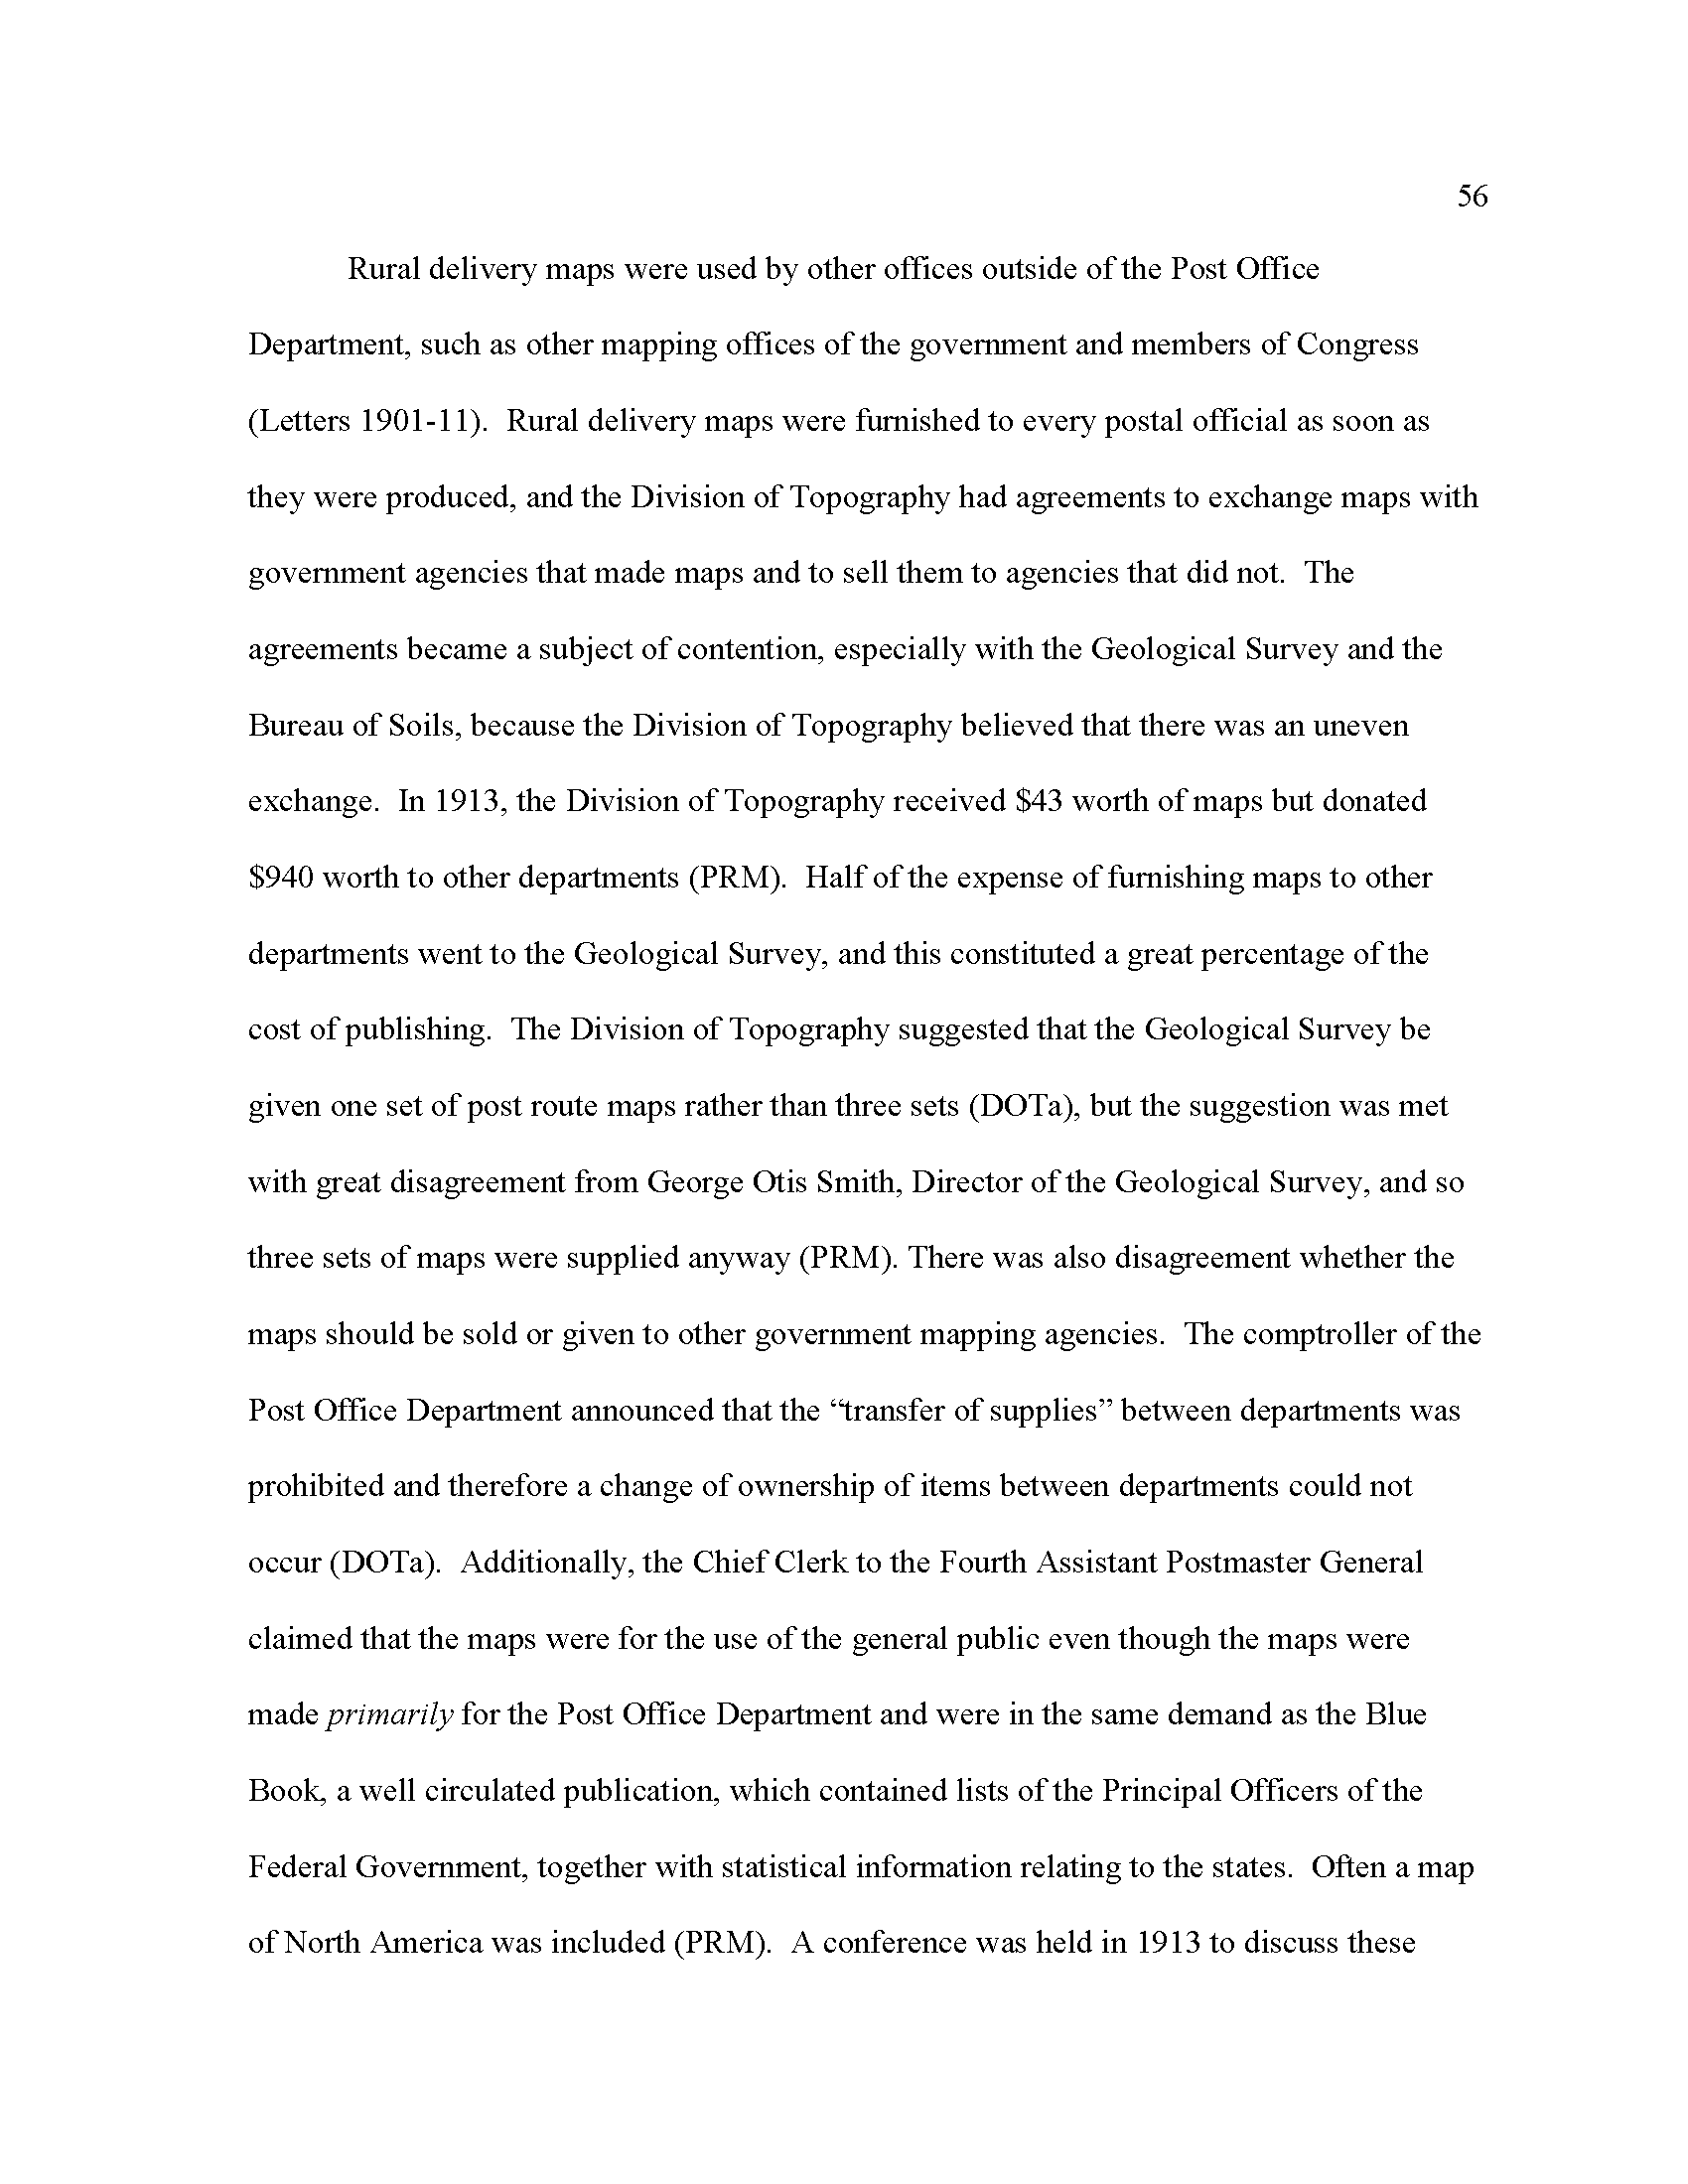 Thesis Final_Page_060.png